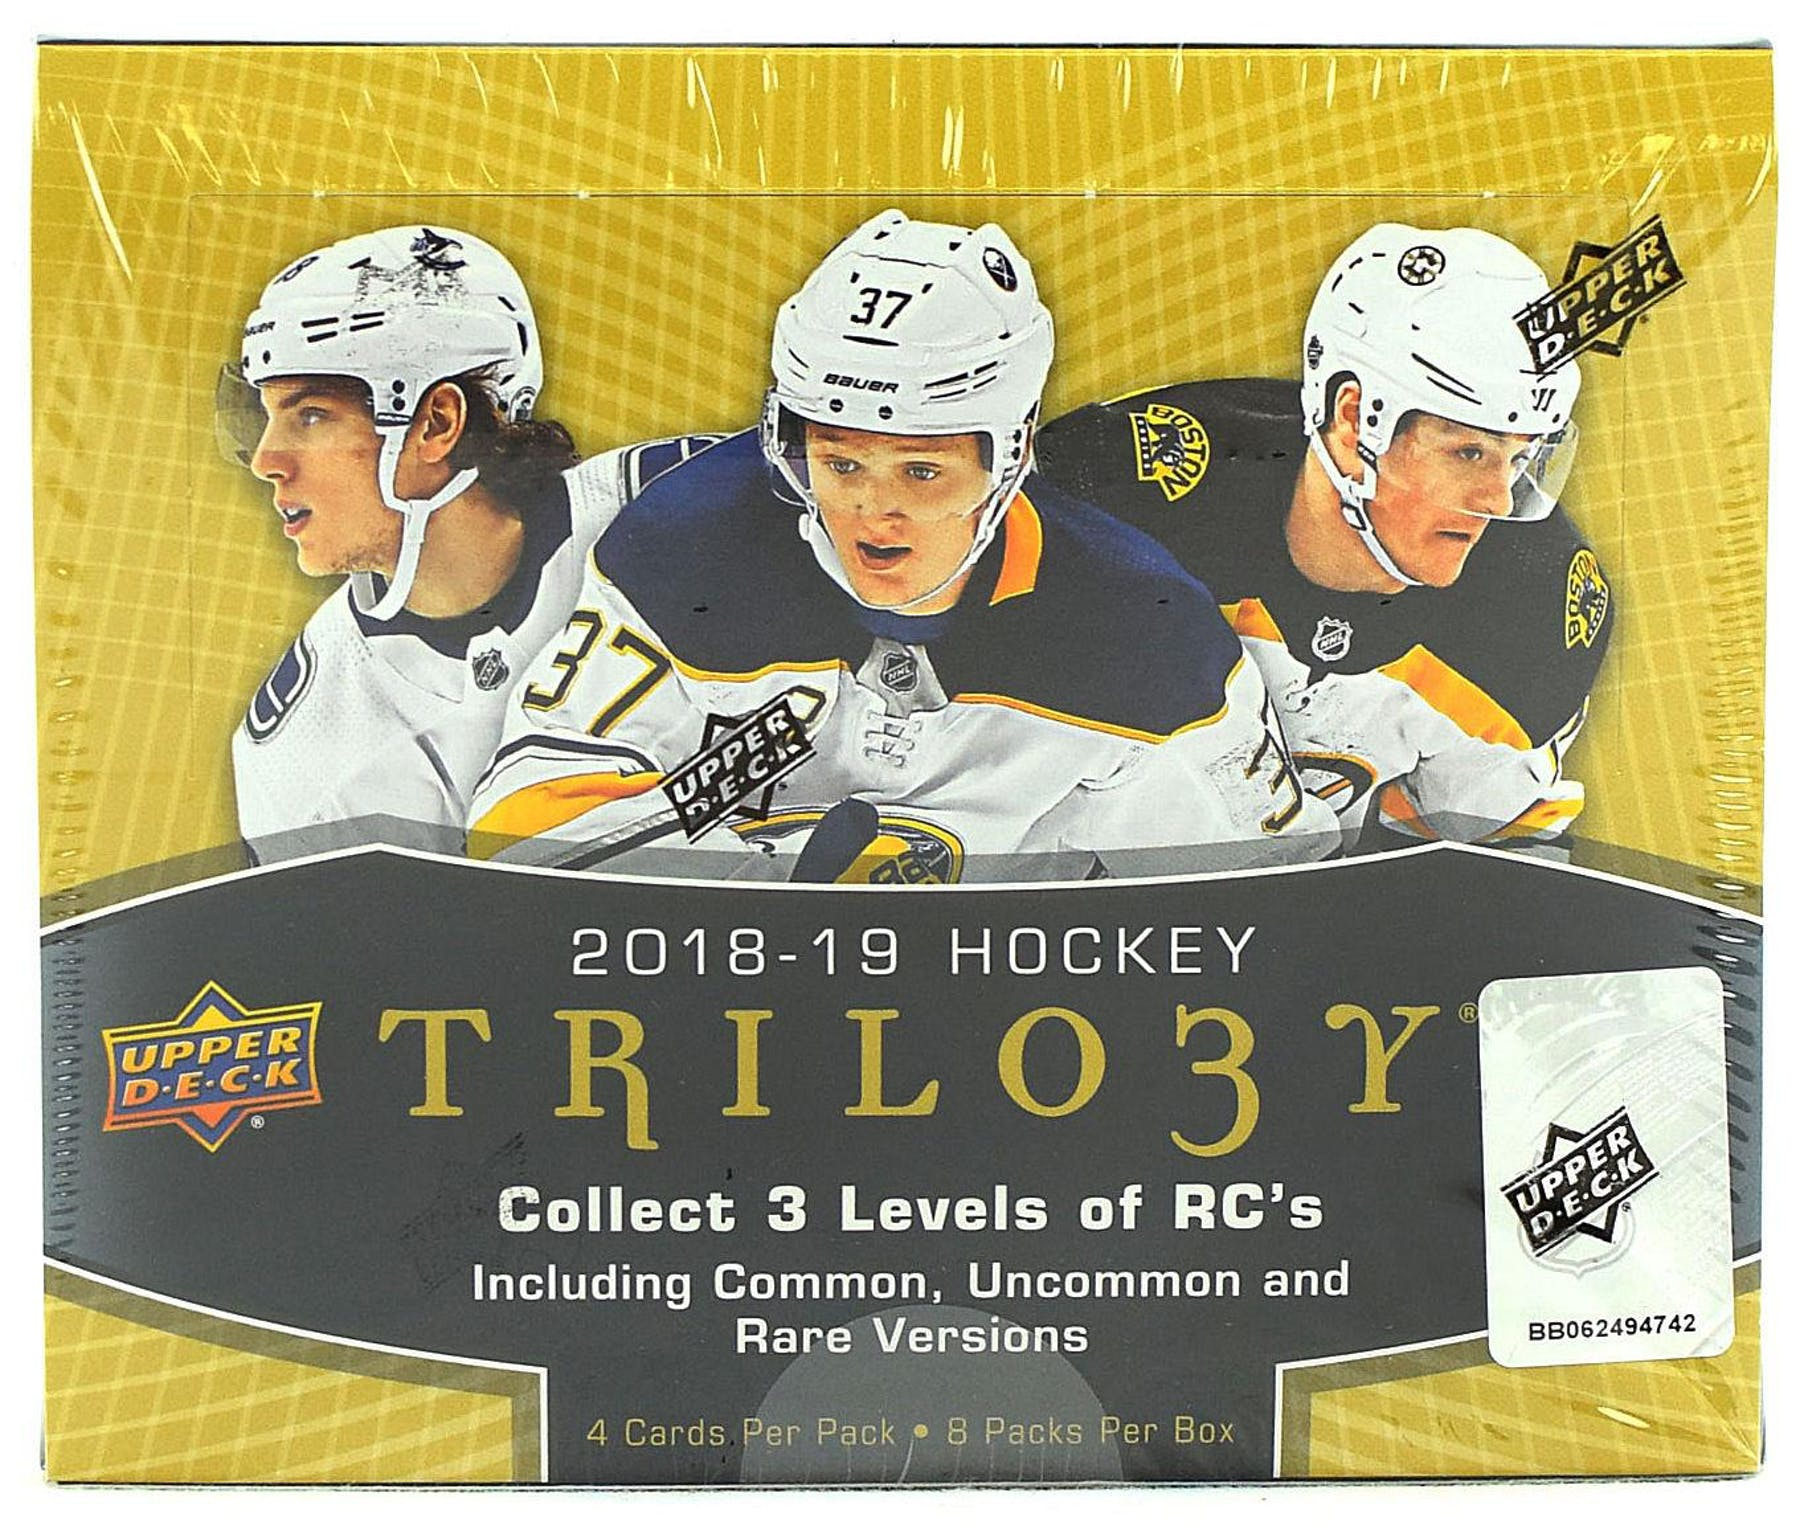 2018-19 Upper Deck Trilogy Hockey Hobby Box - Quecan Distribution